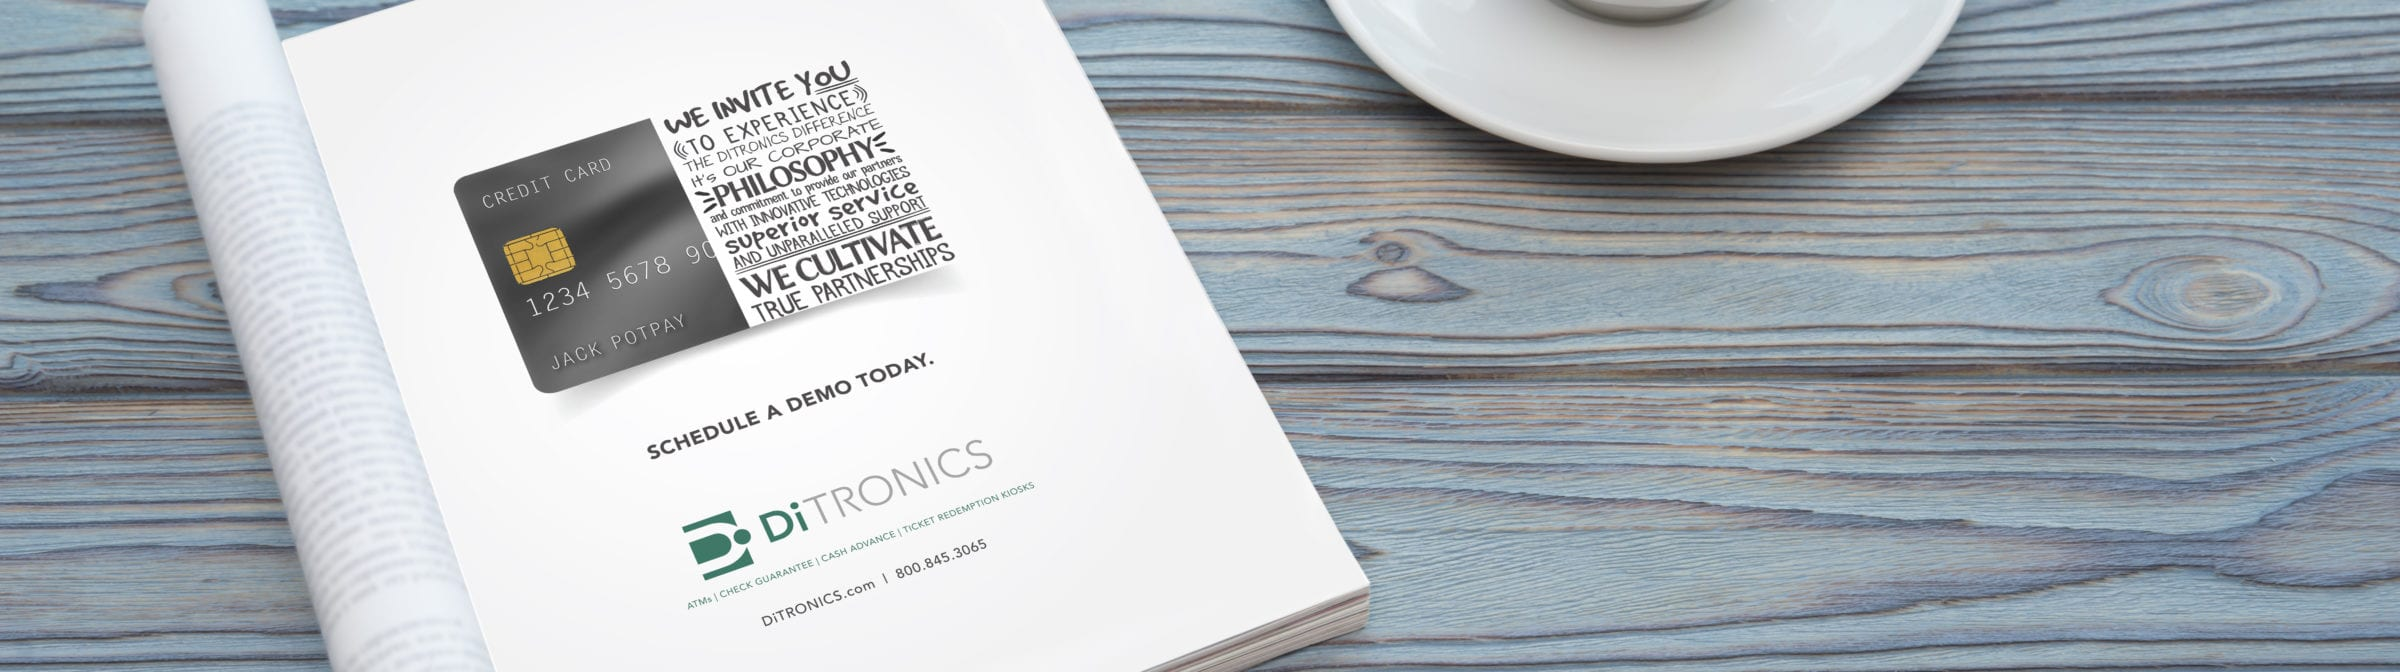 A DiTronics advertisement in a magazine and a cup of coffee